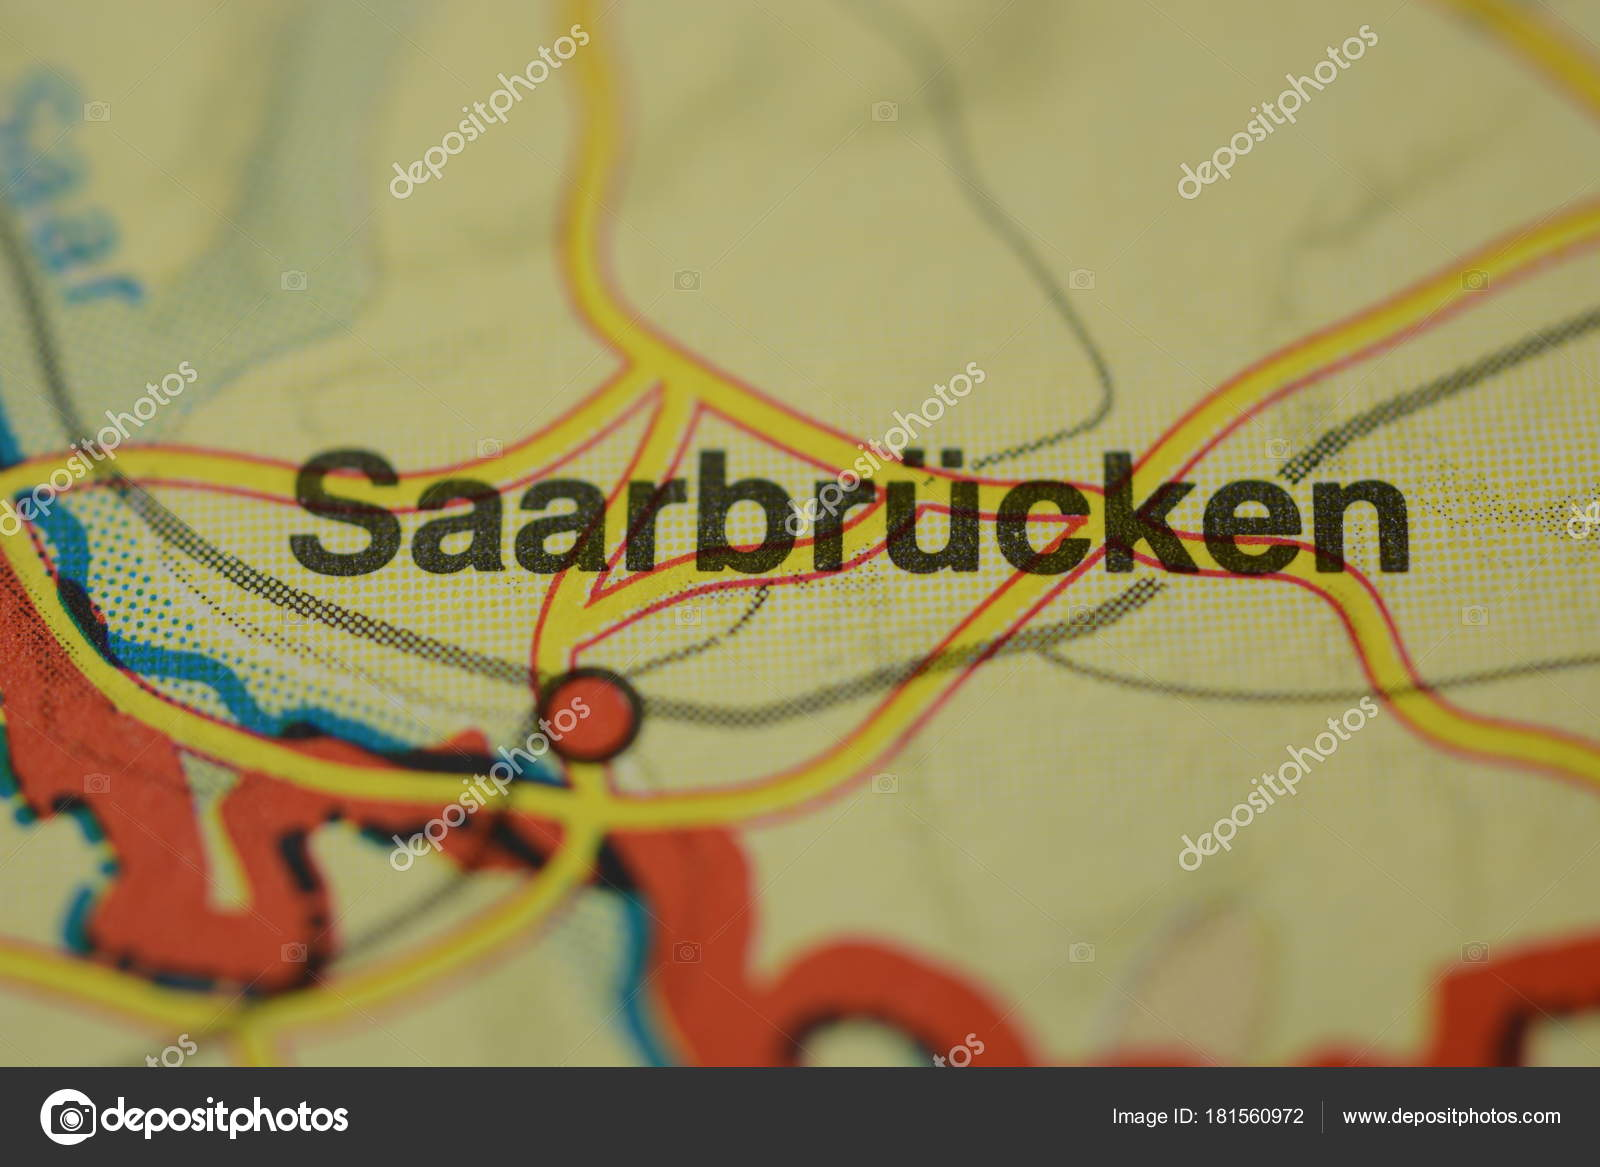 Saarbrucken Germany Map.City Name Saarbrucken Germany Map Stock Photo C Photographer 20